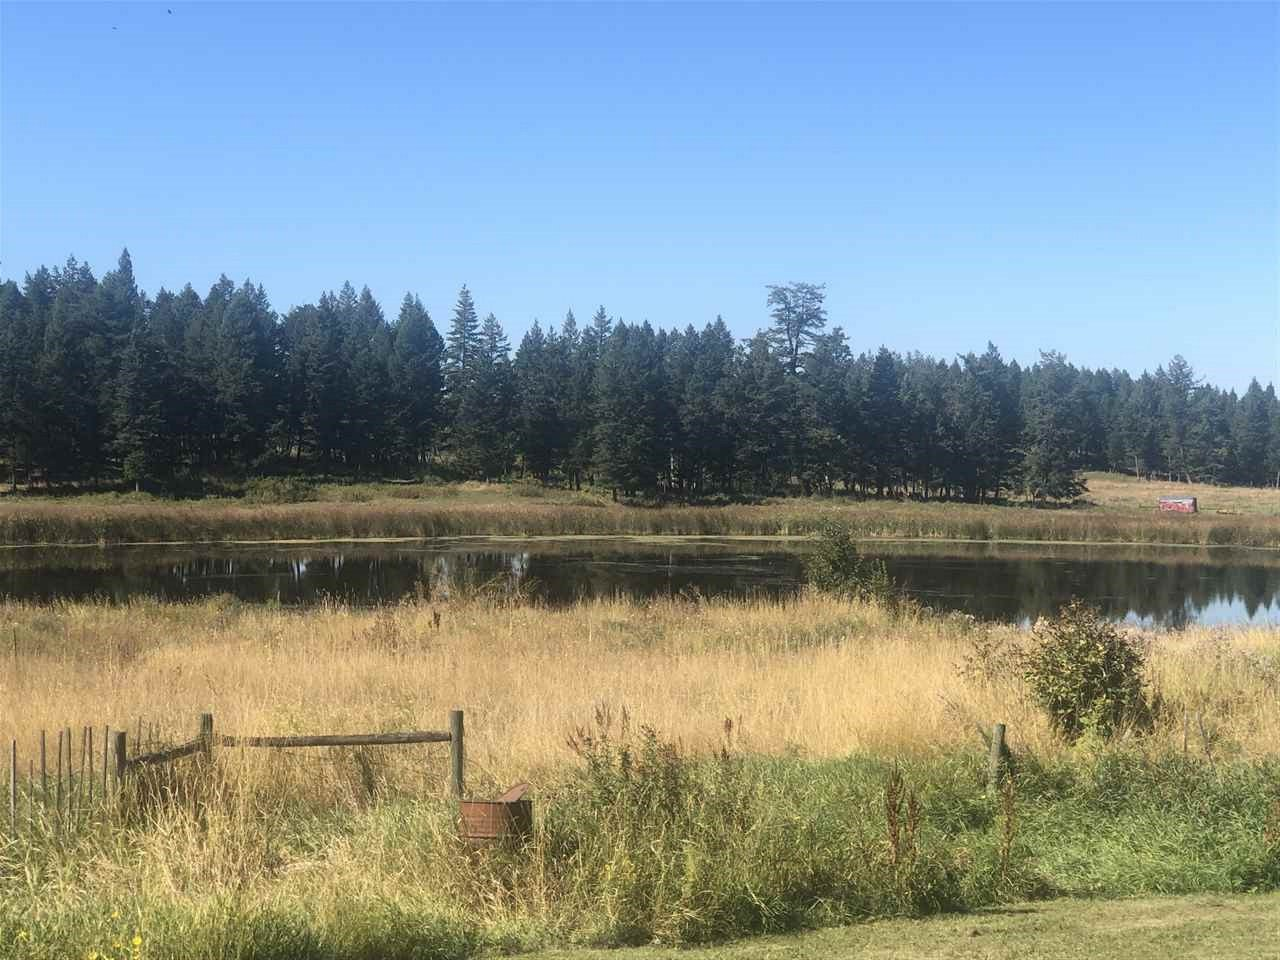 Photo 8: Photos: 3090 150 MILE FRONTAGE Road: 150 Mile House Land Commercial for sale (Williams Lake (Zone 27))  : MLS®# C8034187